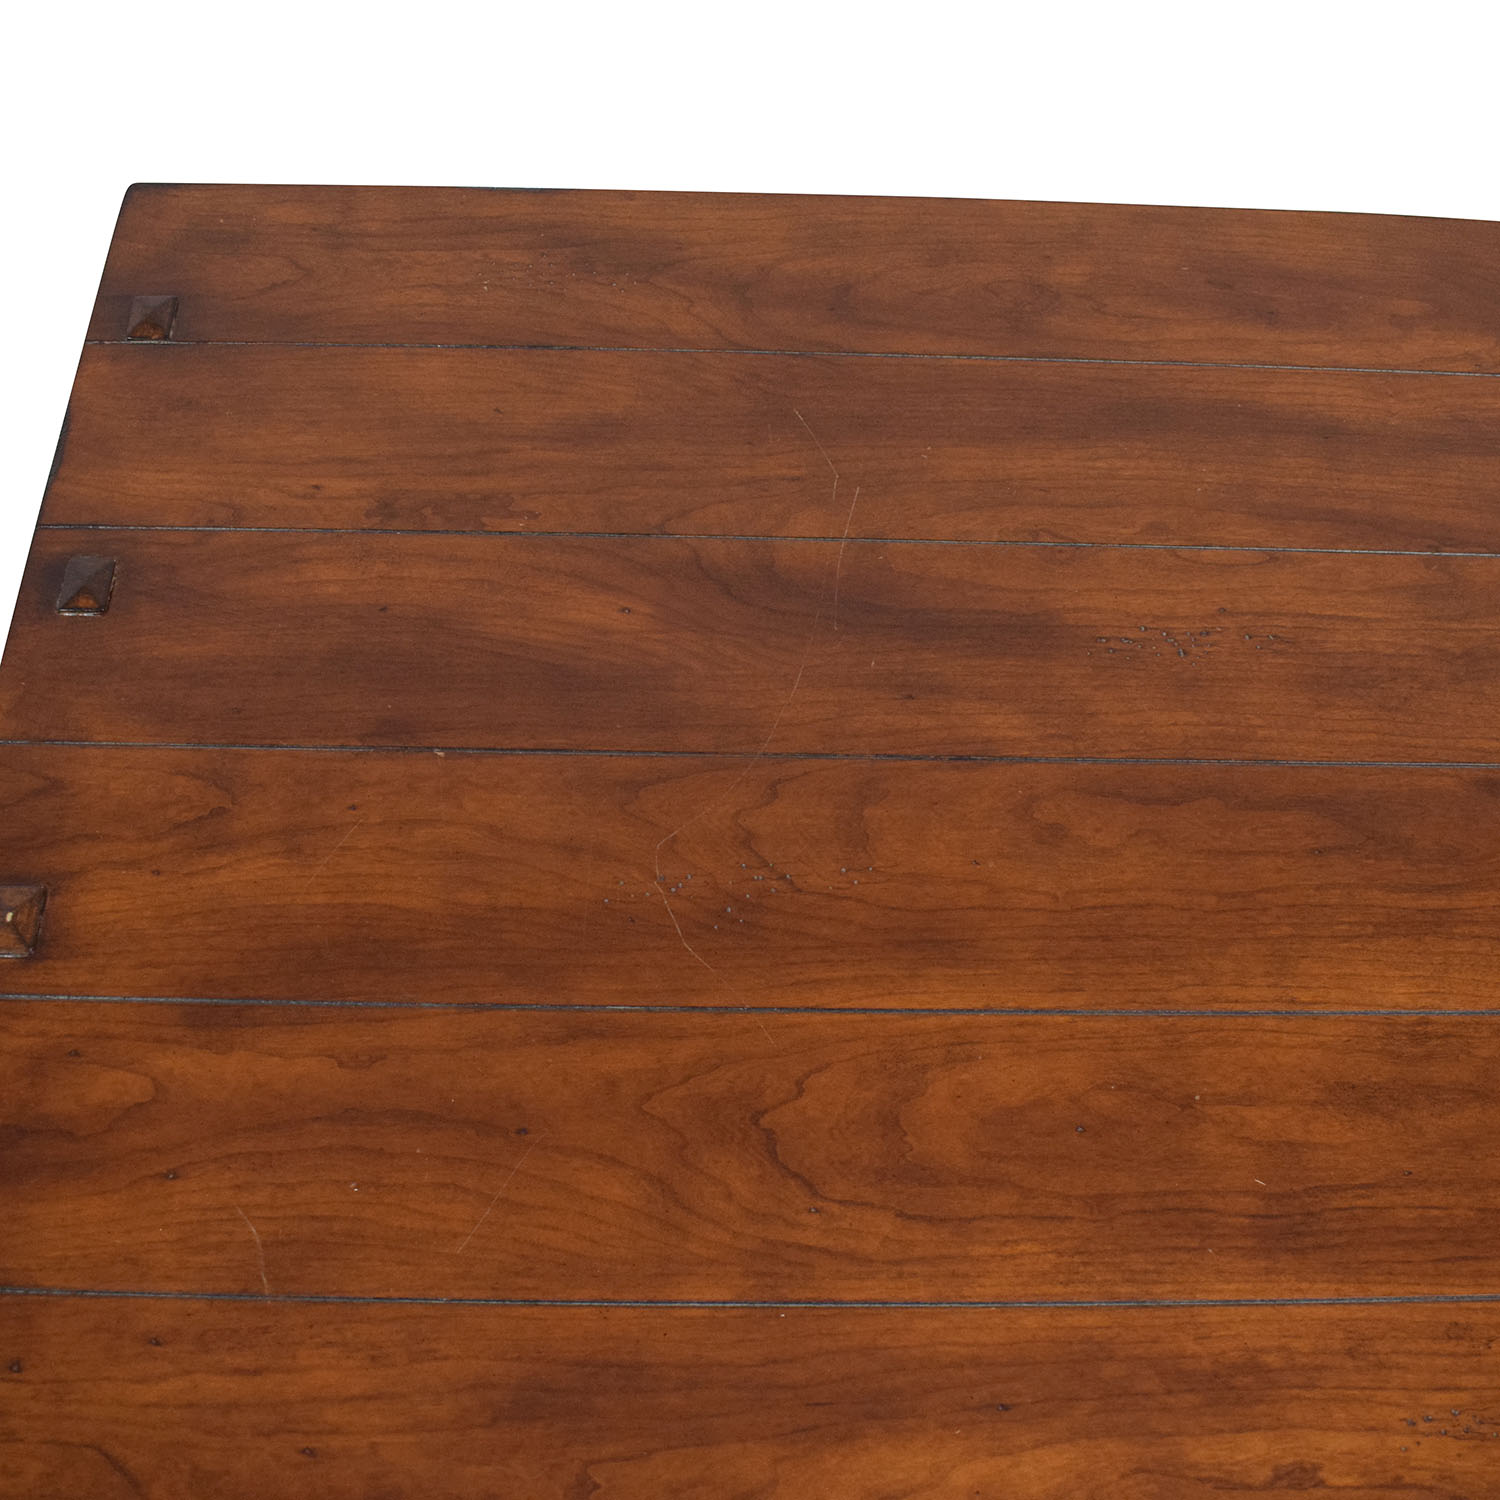 Four Drawer Coffee Table brown